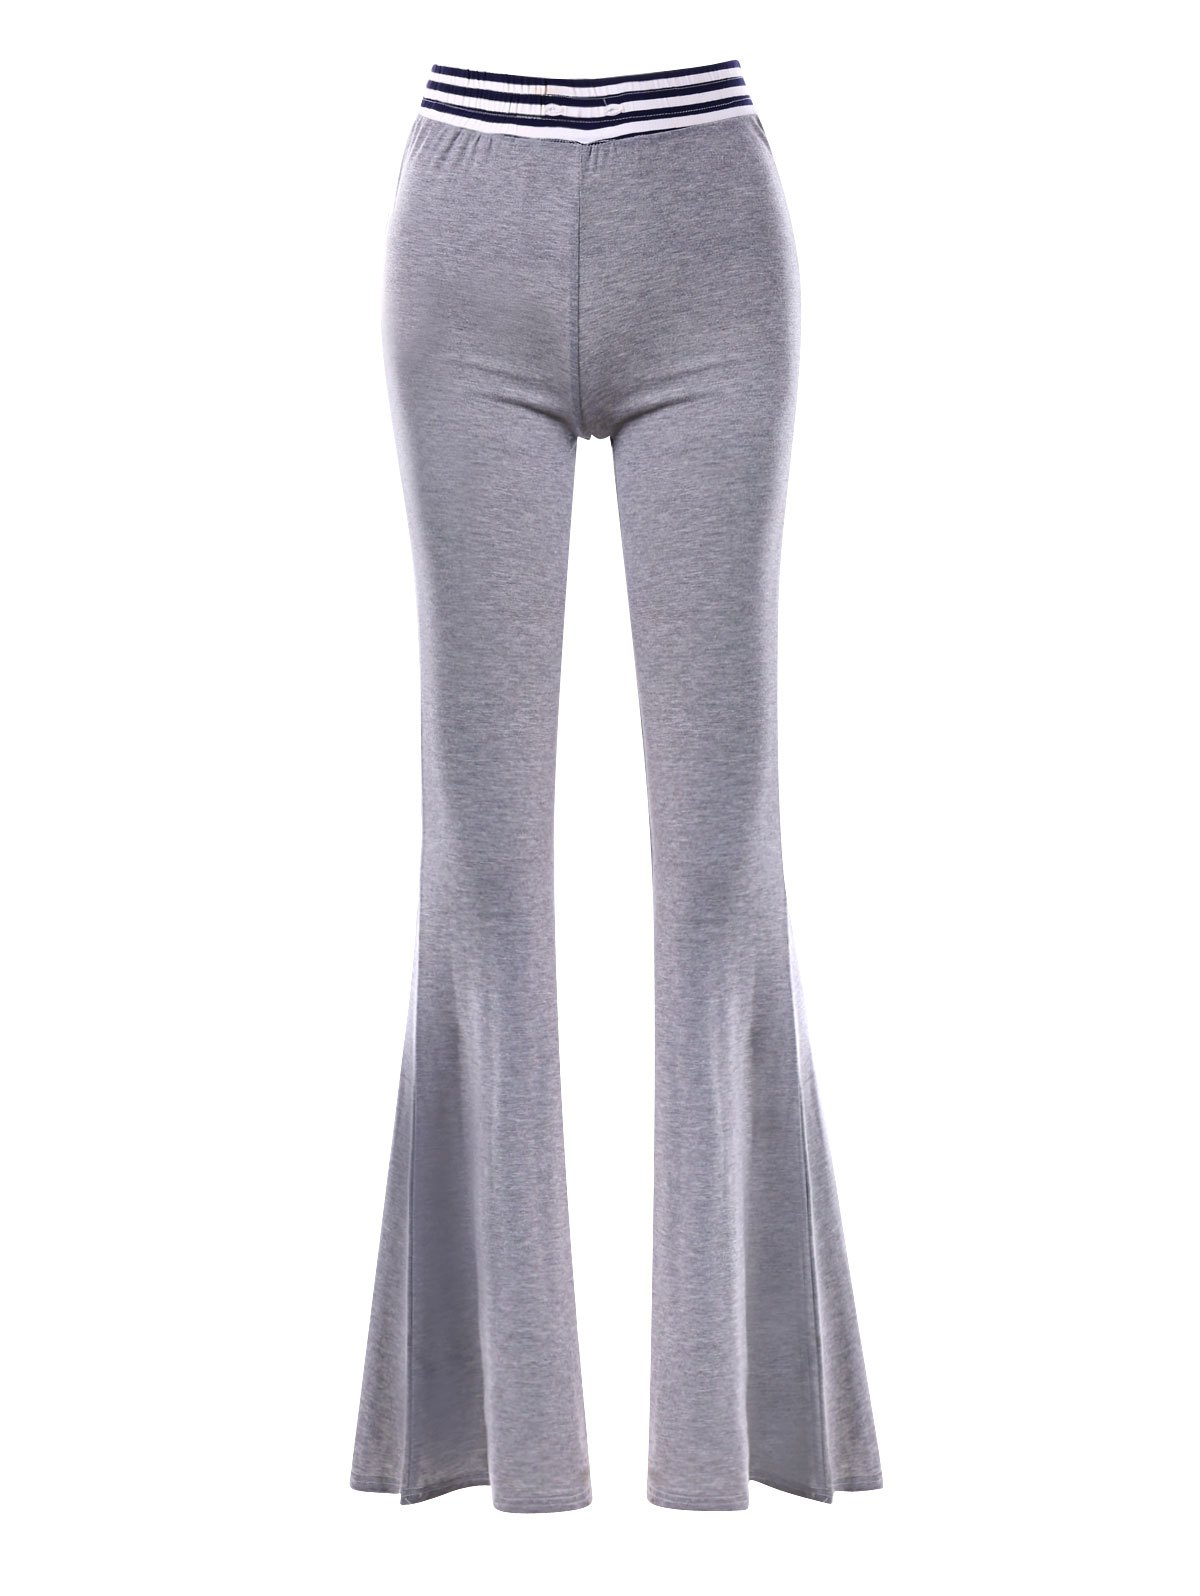 Striped Insert Maxi Flare Pants - GRAY L